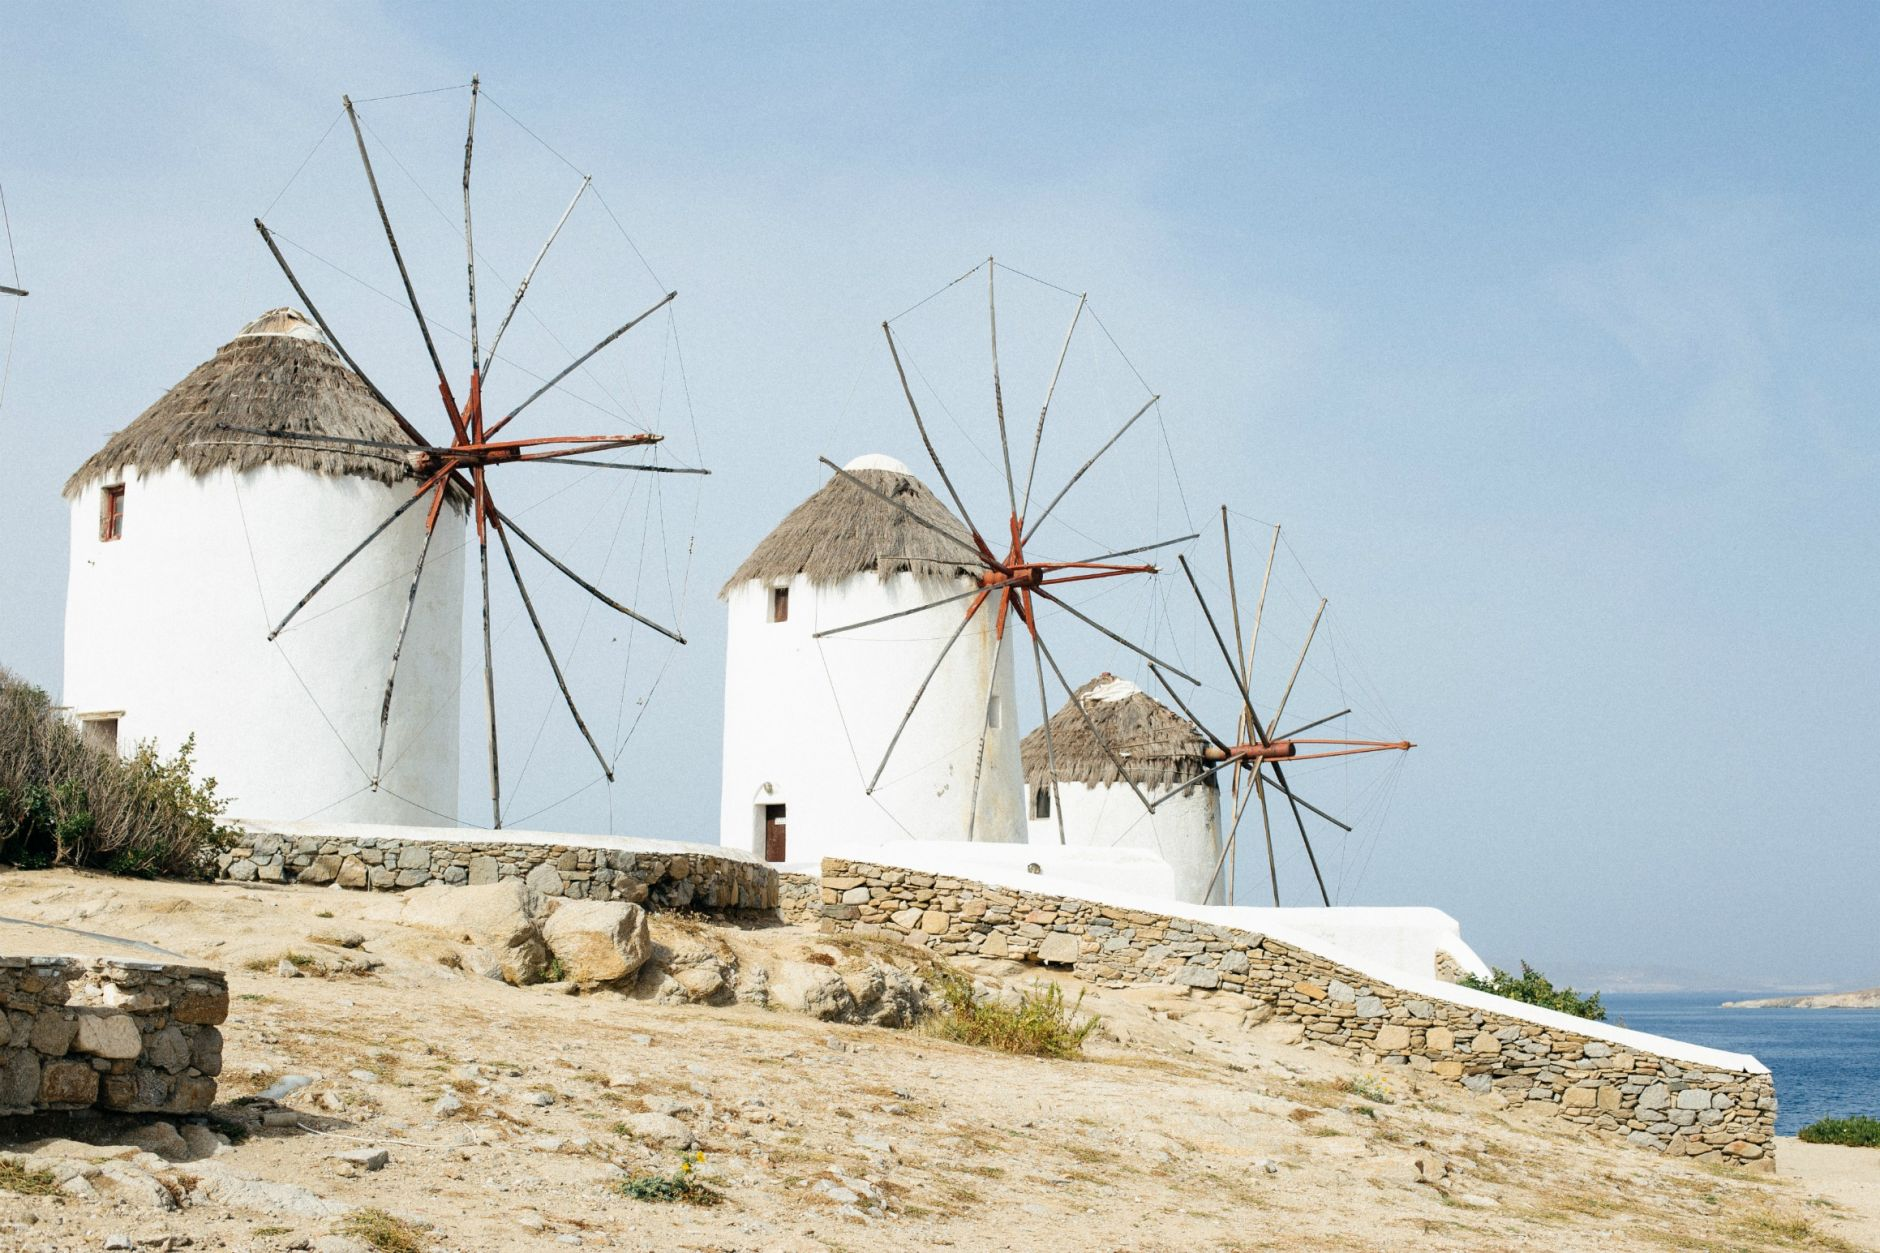 wind-mills-mykonos-town-2016-holidays-vacay-disi-couture-02